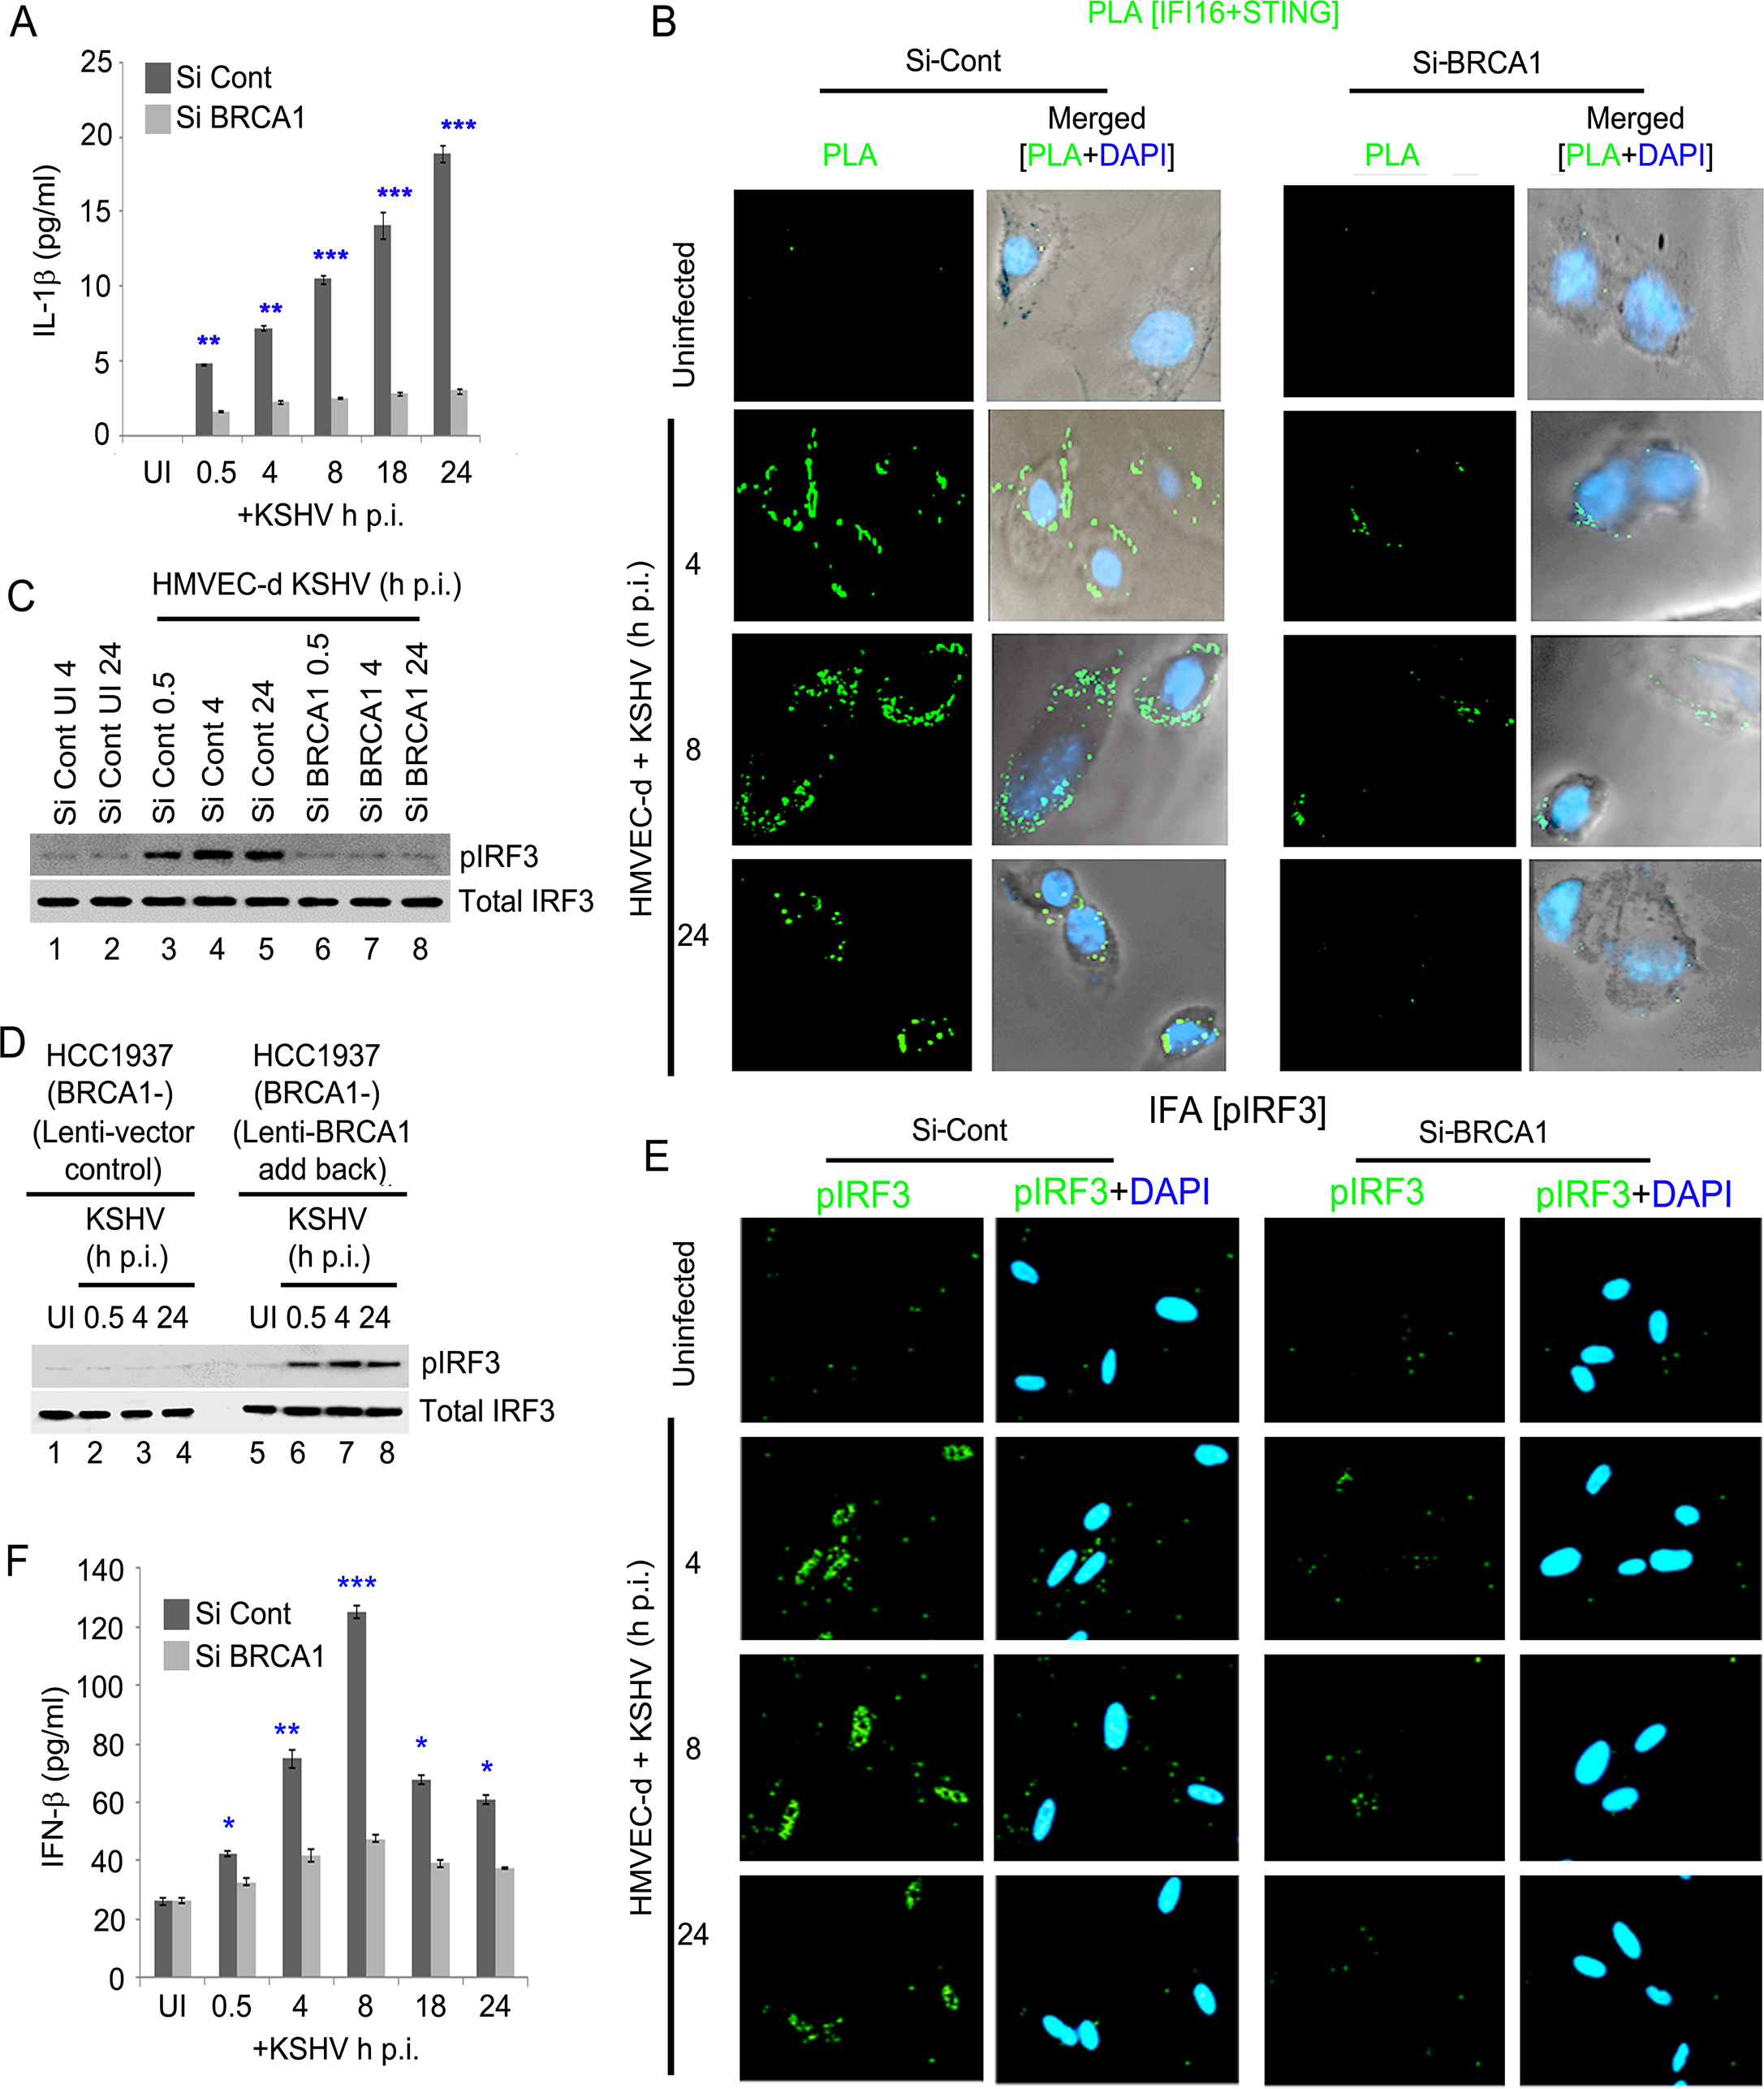 Effect of BRCA1 knockdown on subsequent IFI16 dependent innate immune response activation during KSHV infection.